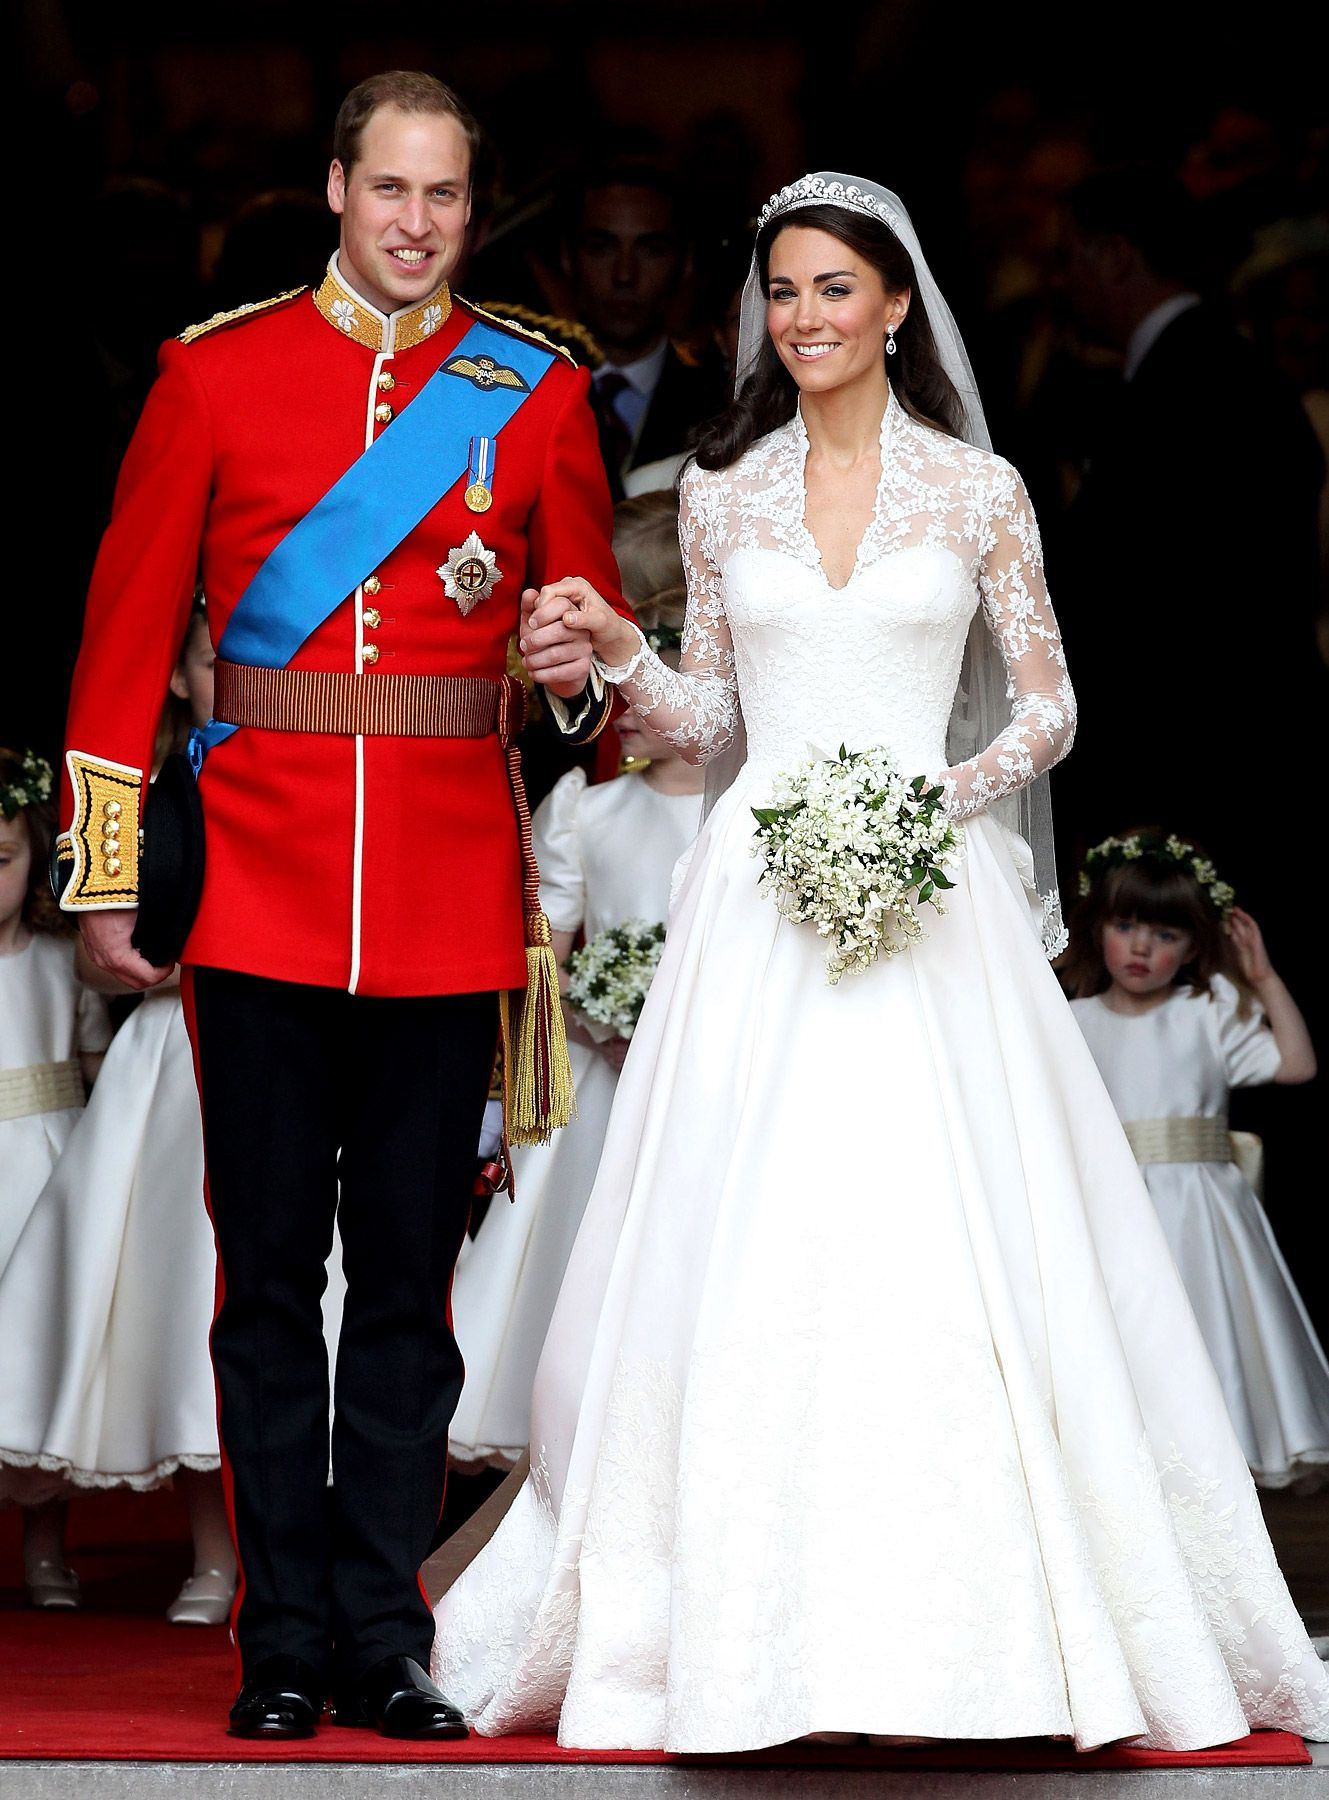 Get Kate Middleton's Wedding Dress Replica For $2,500